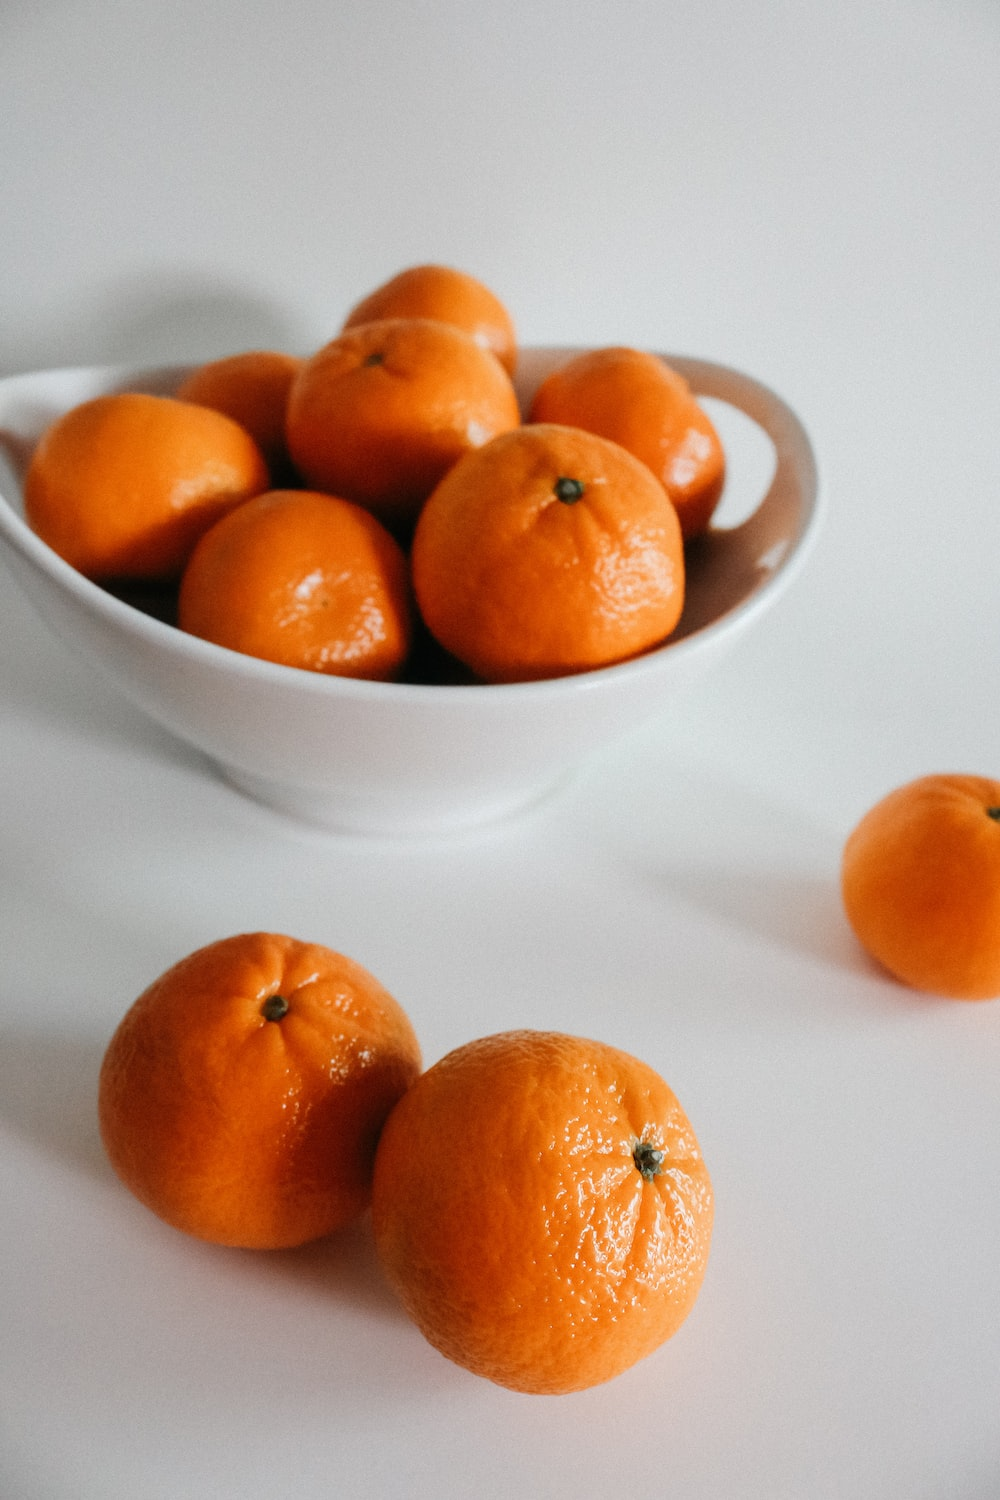 orange fruits on white bowl